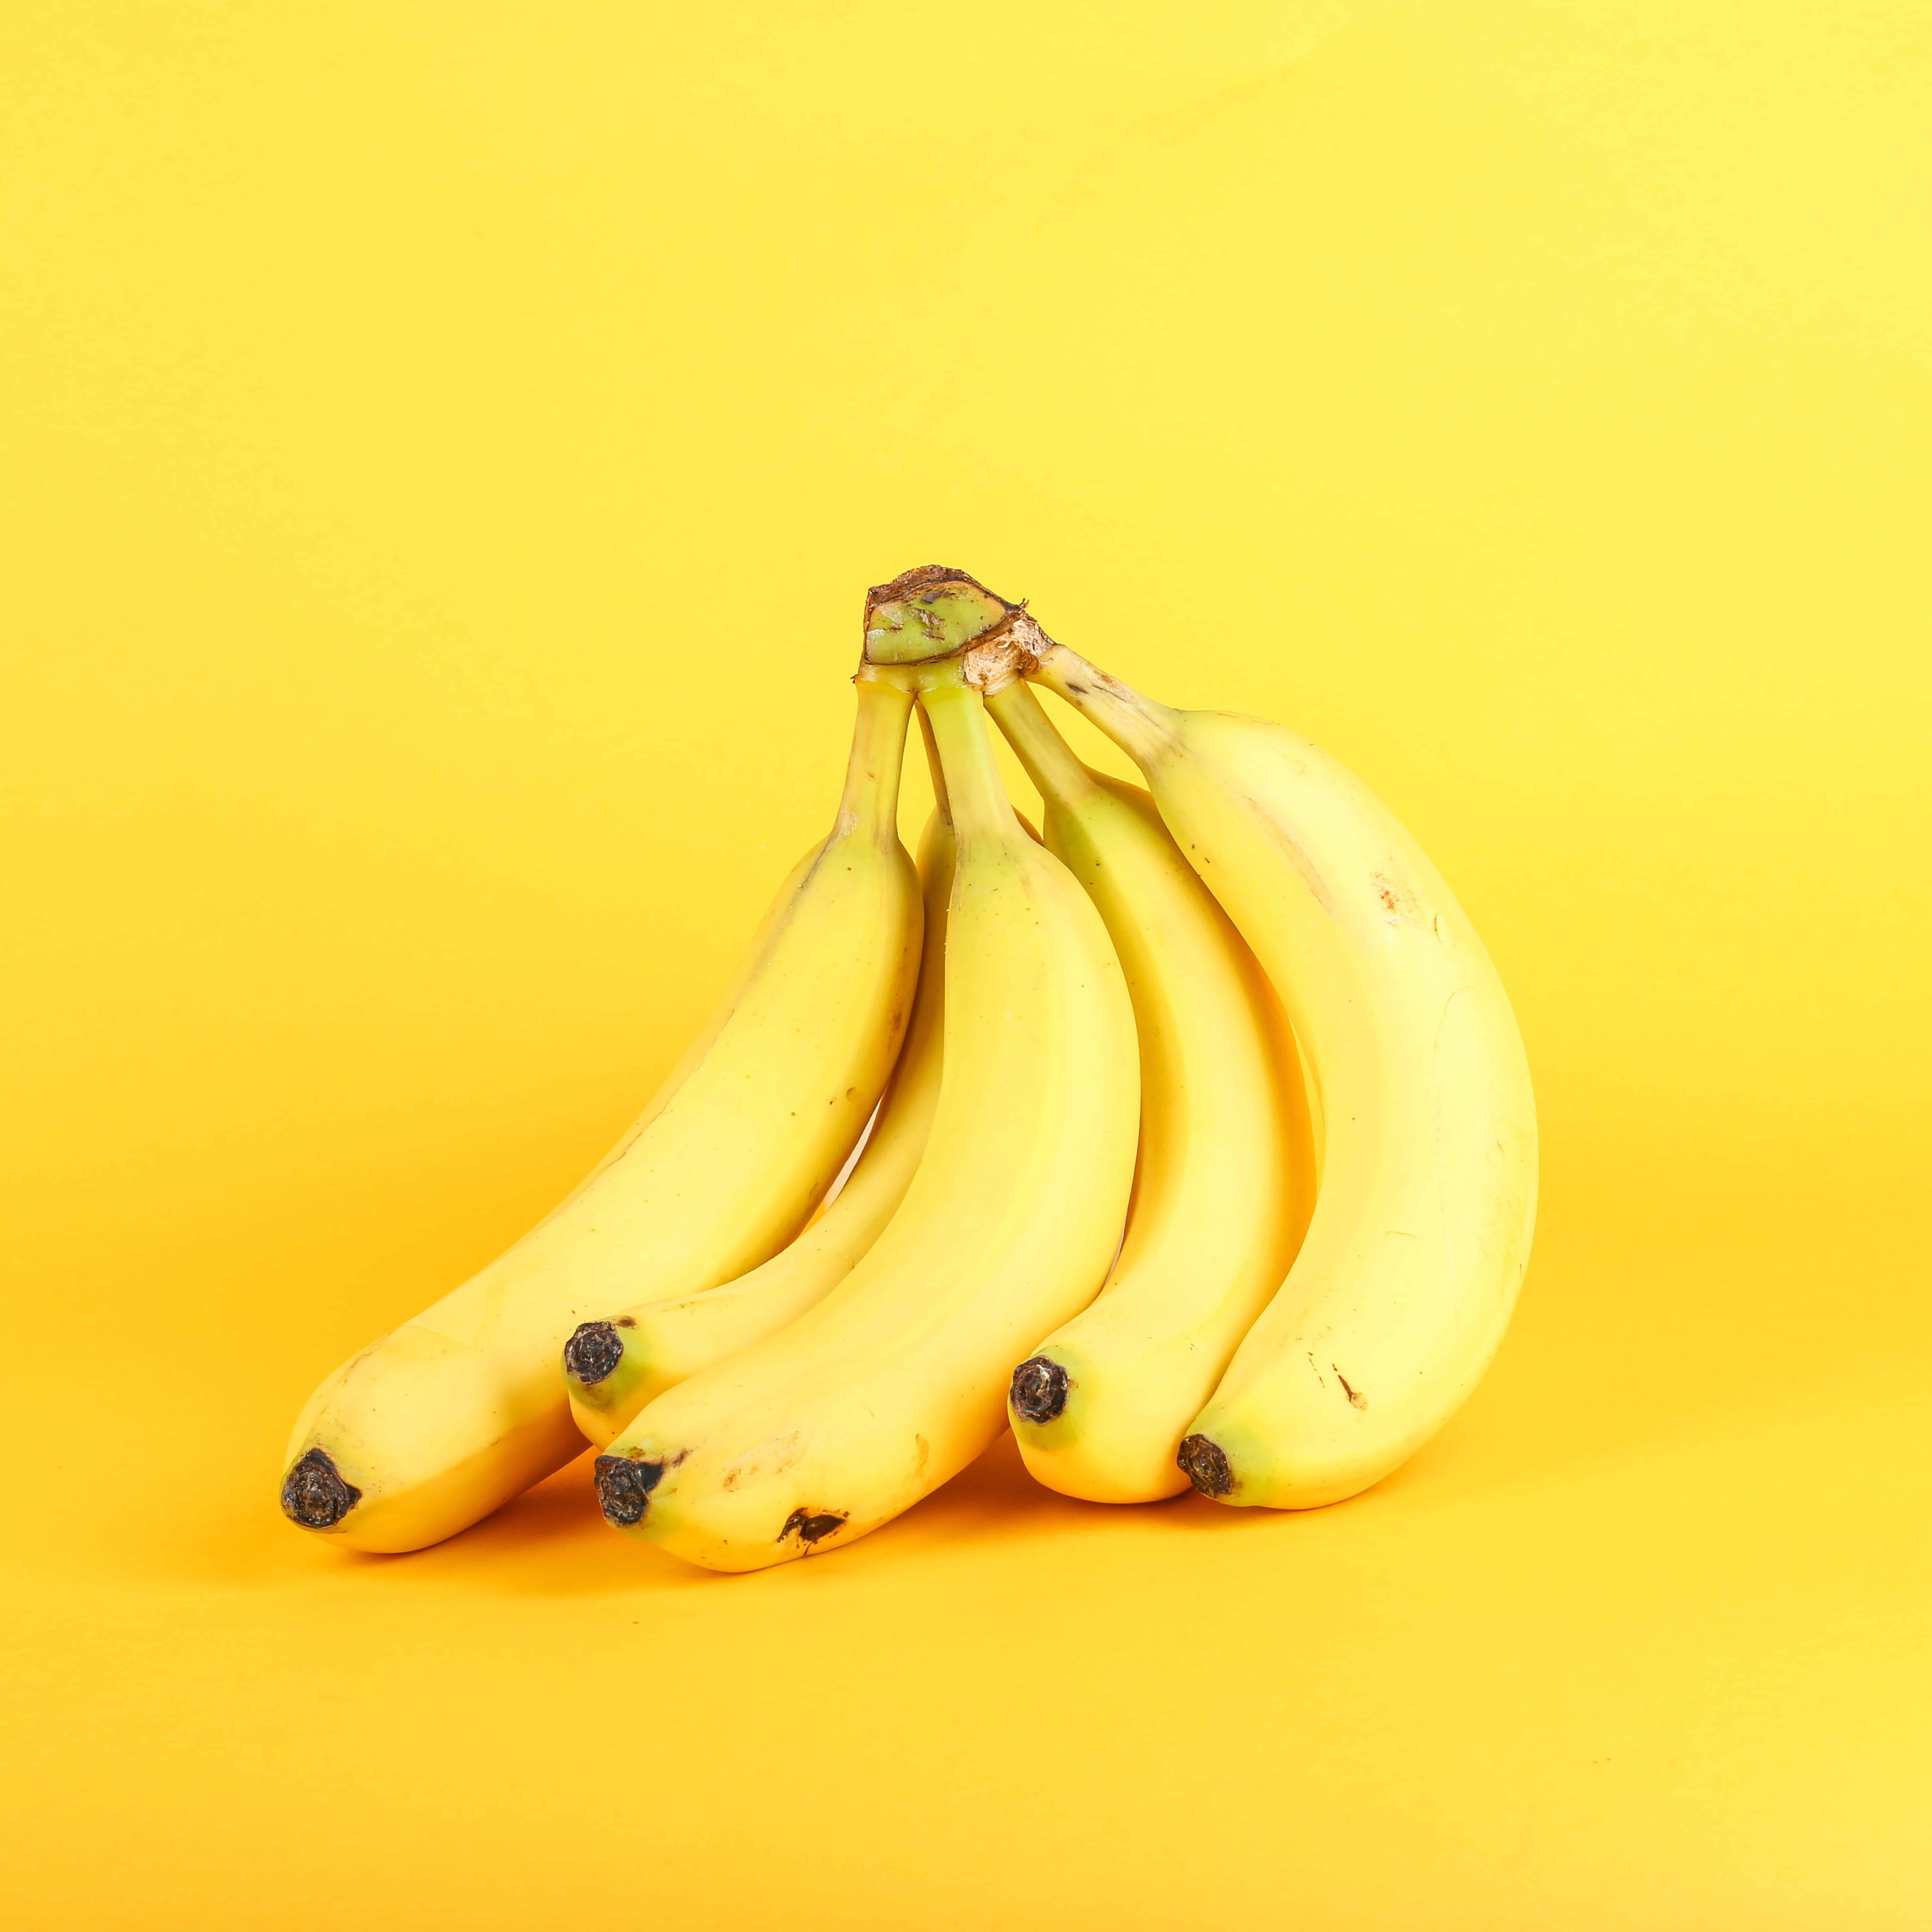 bunch of bananas, food facts